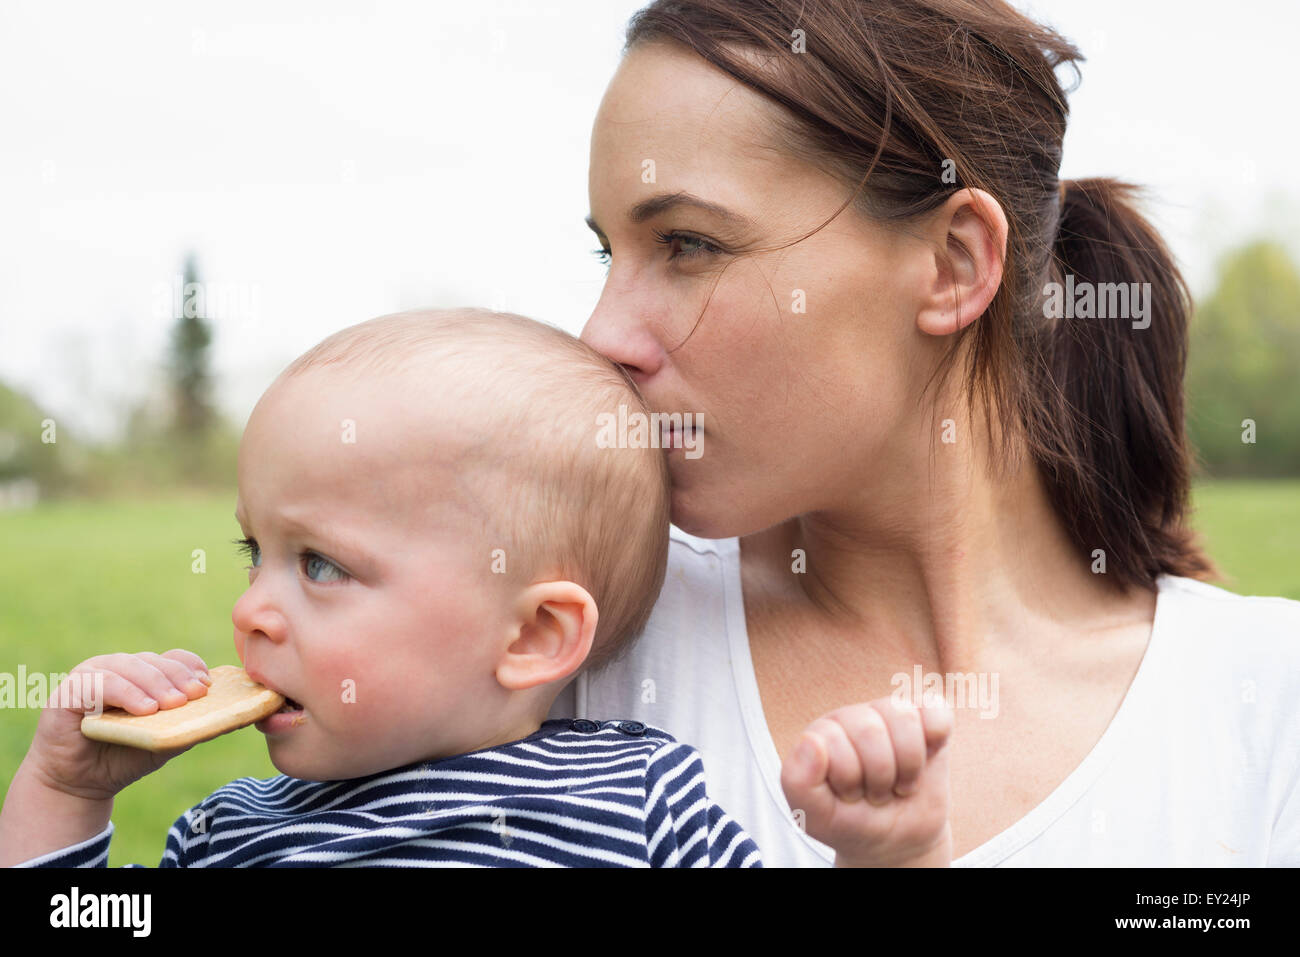 Portrait of young mother kissing baby son in field - Stock Image